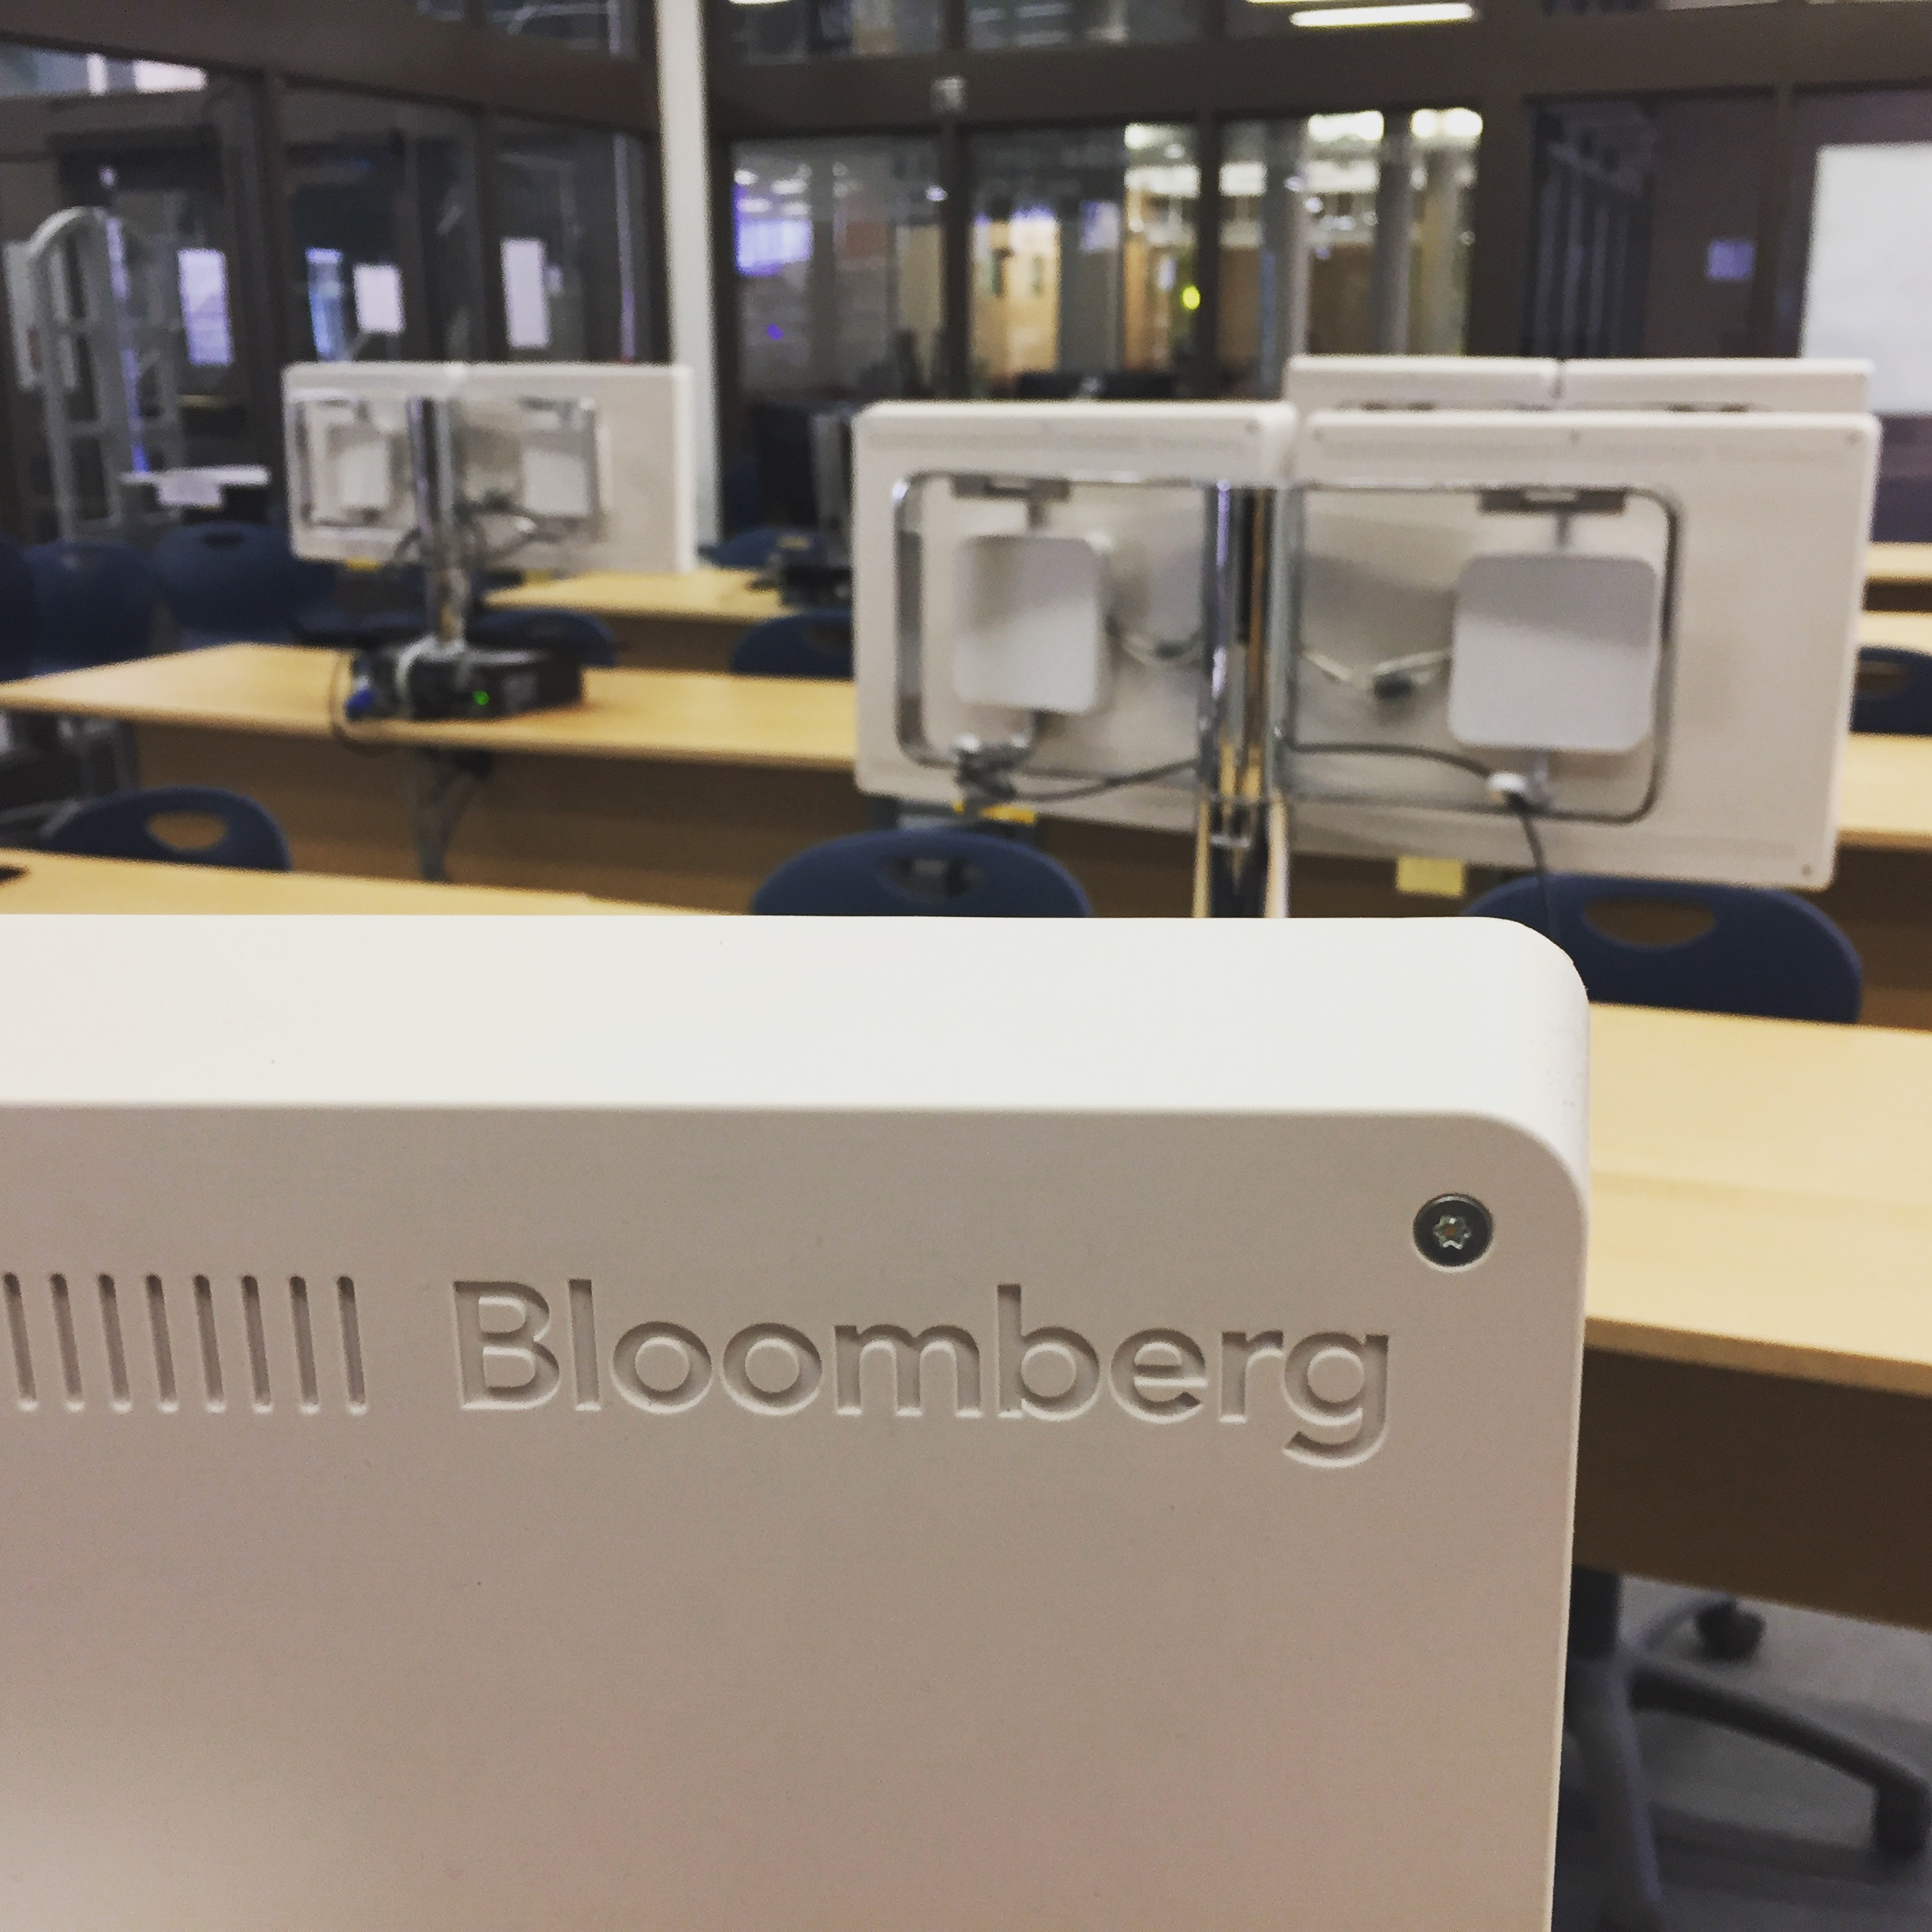 Image of Bloomberg Lab terminal from the back